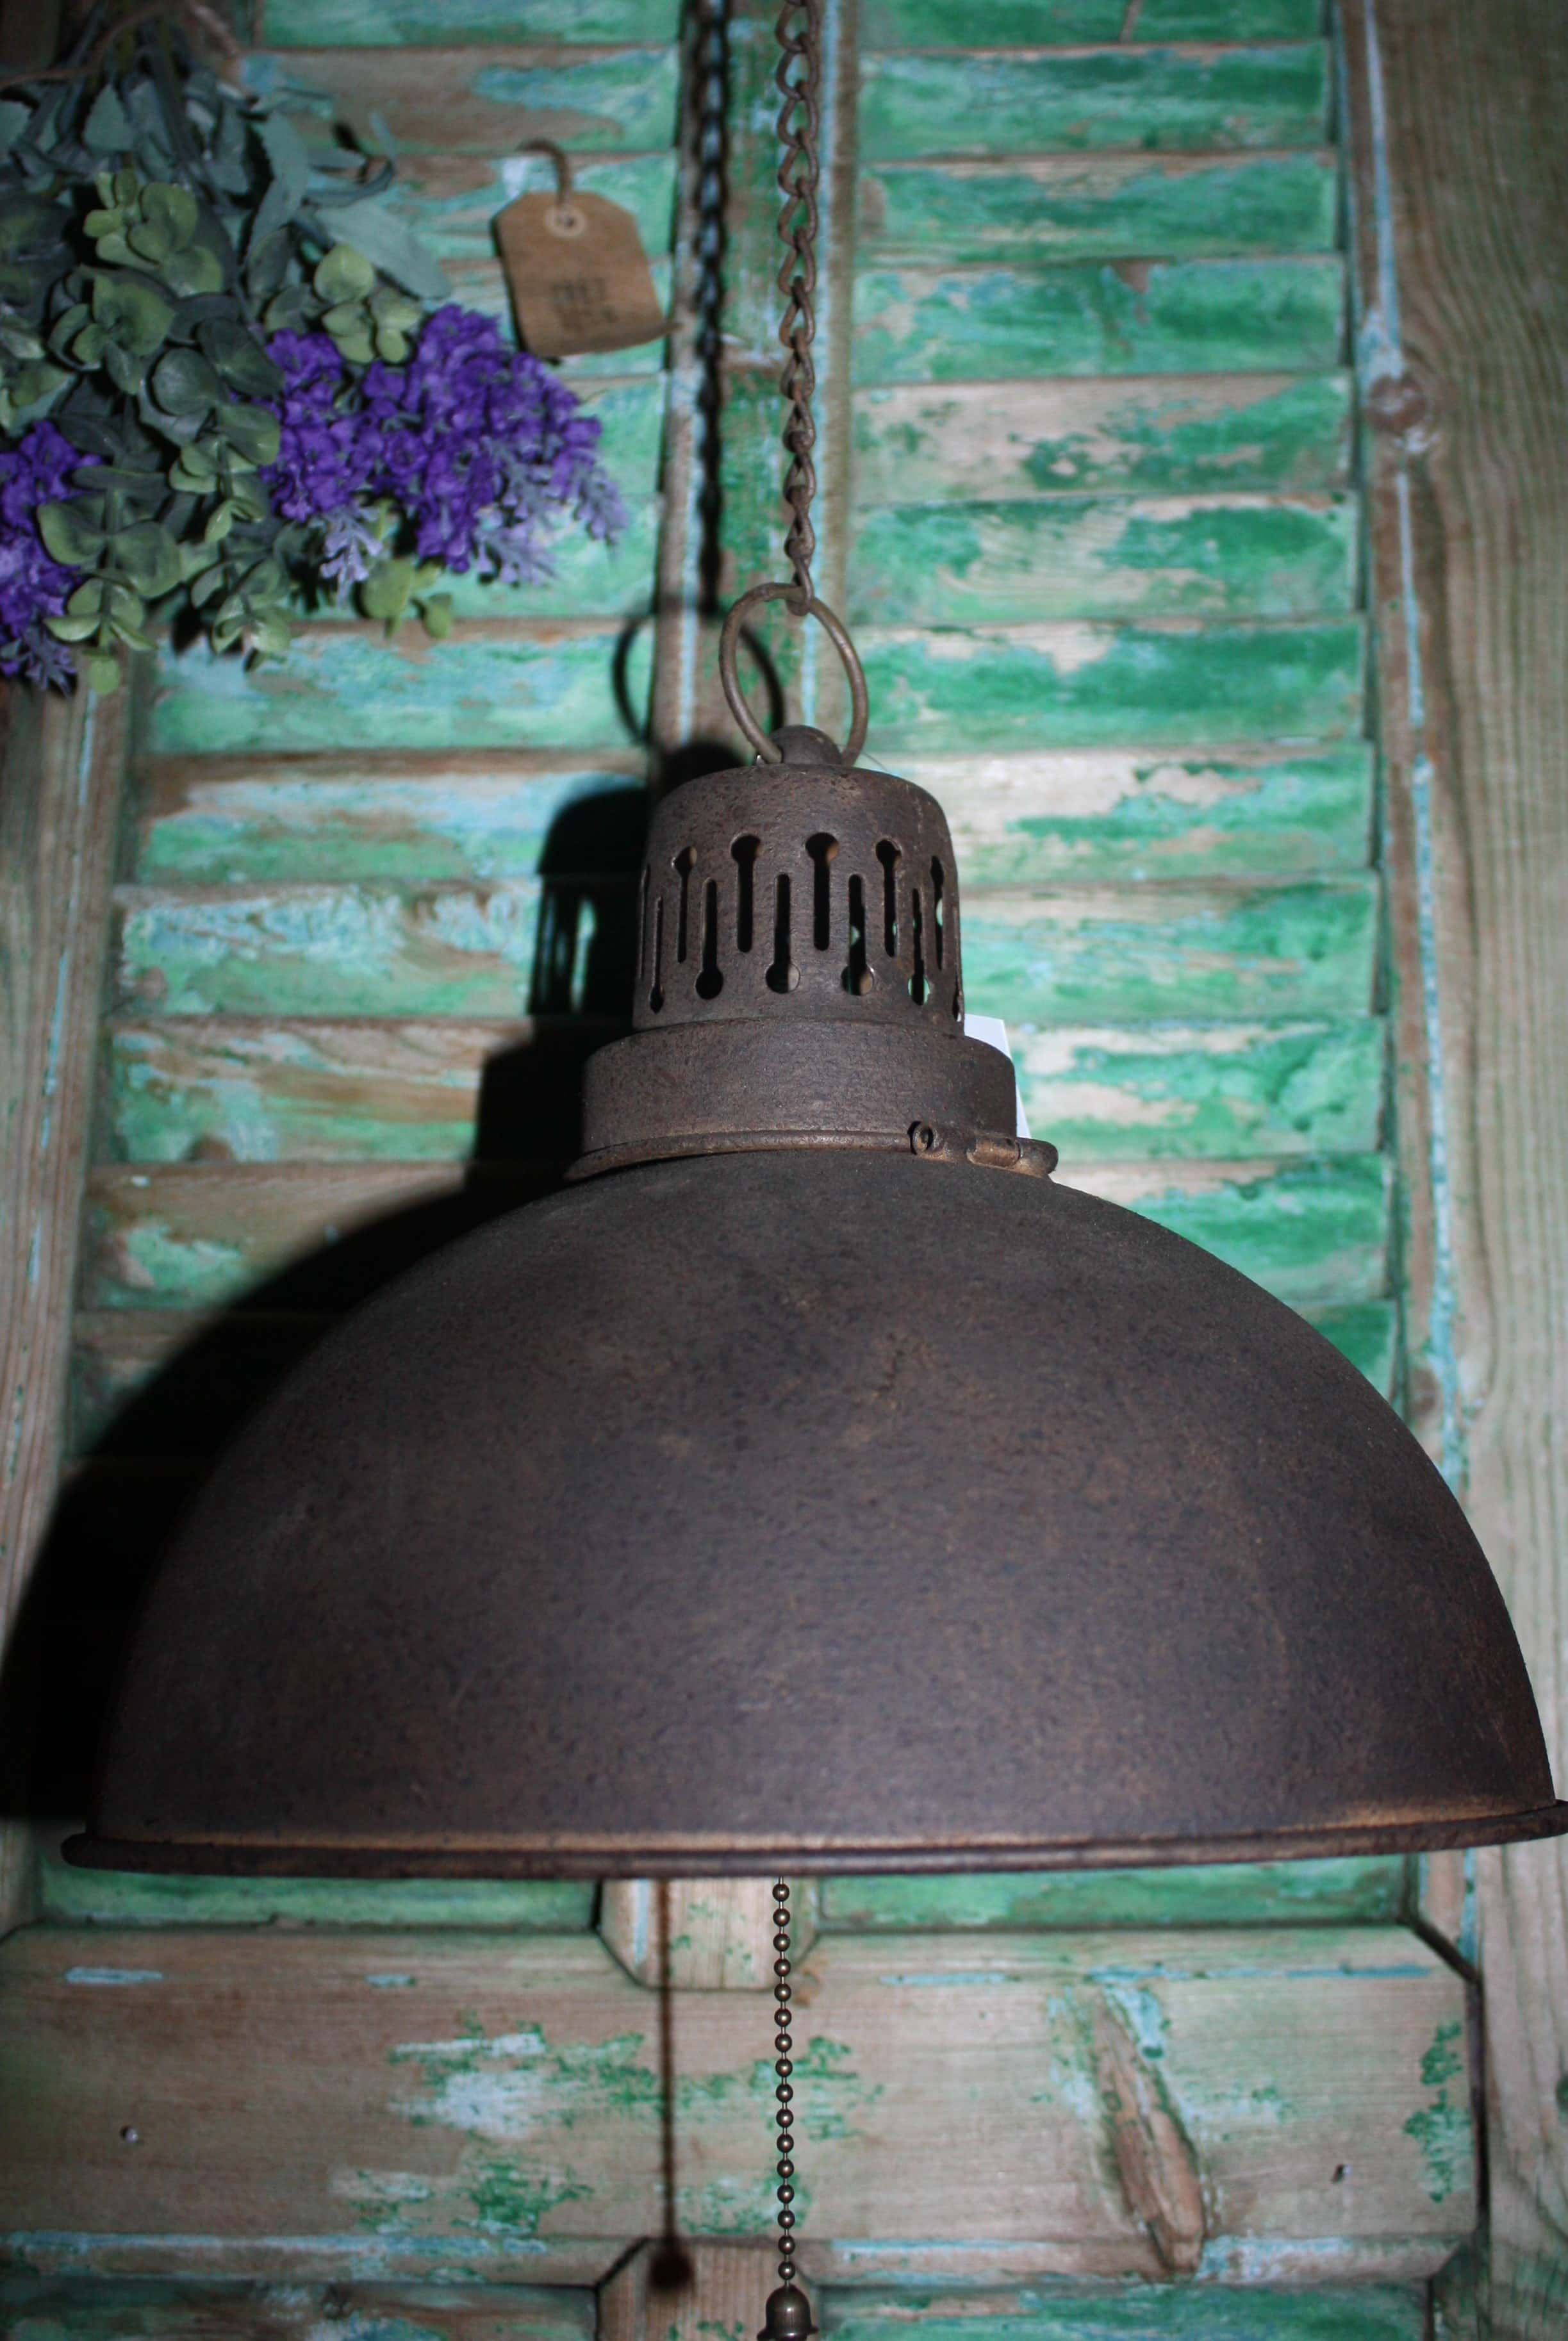 countryfield hanglamp